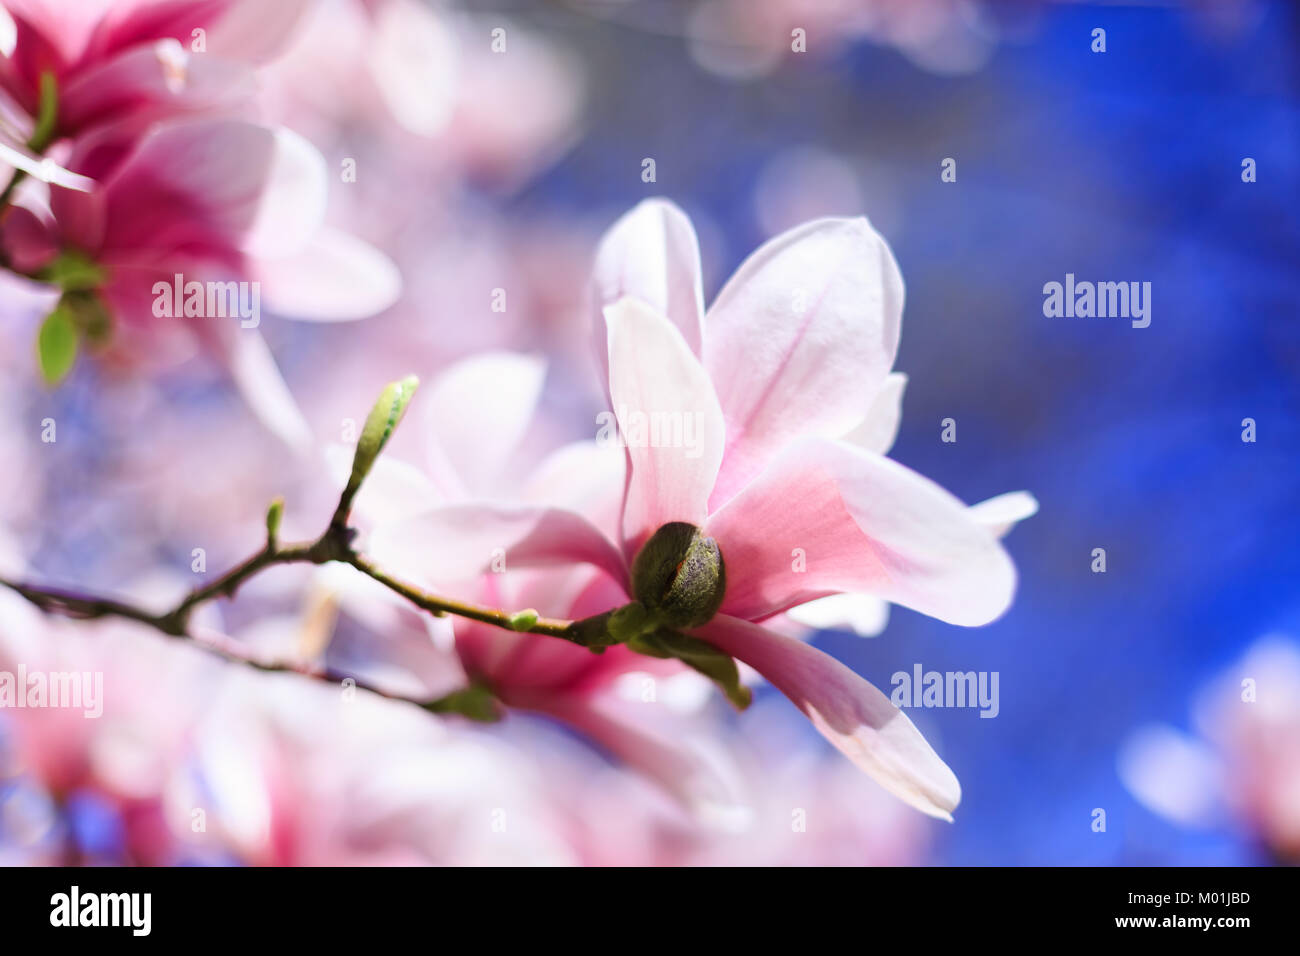 Pink magnolia flower on blue sky background with shallow depth of pink magnolia flower on blue sky background with shallow depth of field and selective focus on flower petal magnolia flowers in spring with blue sky mightylinksfo